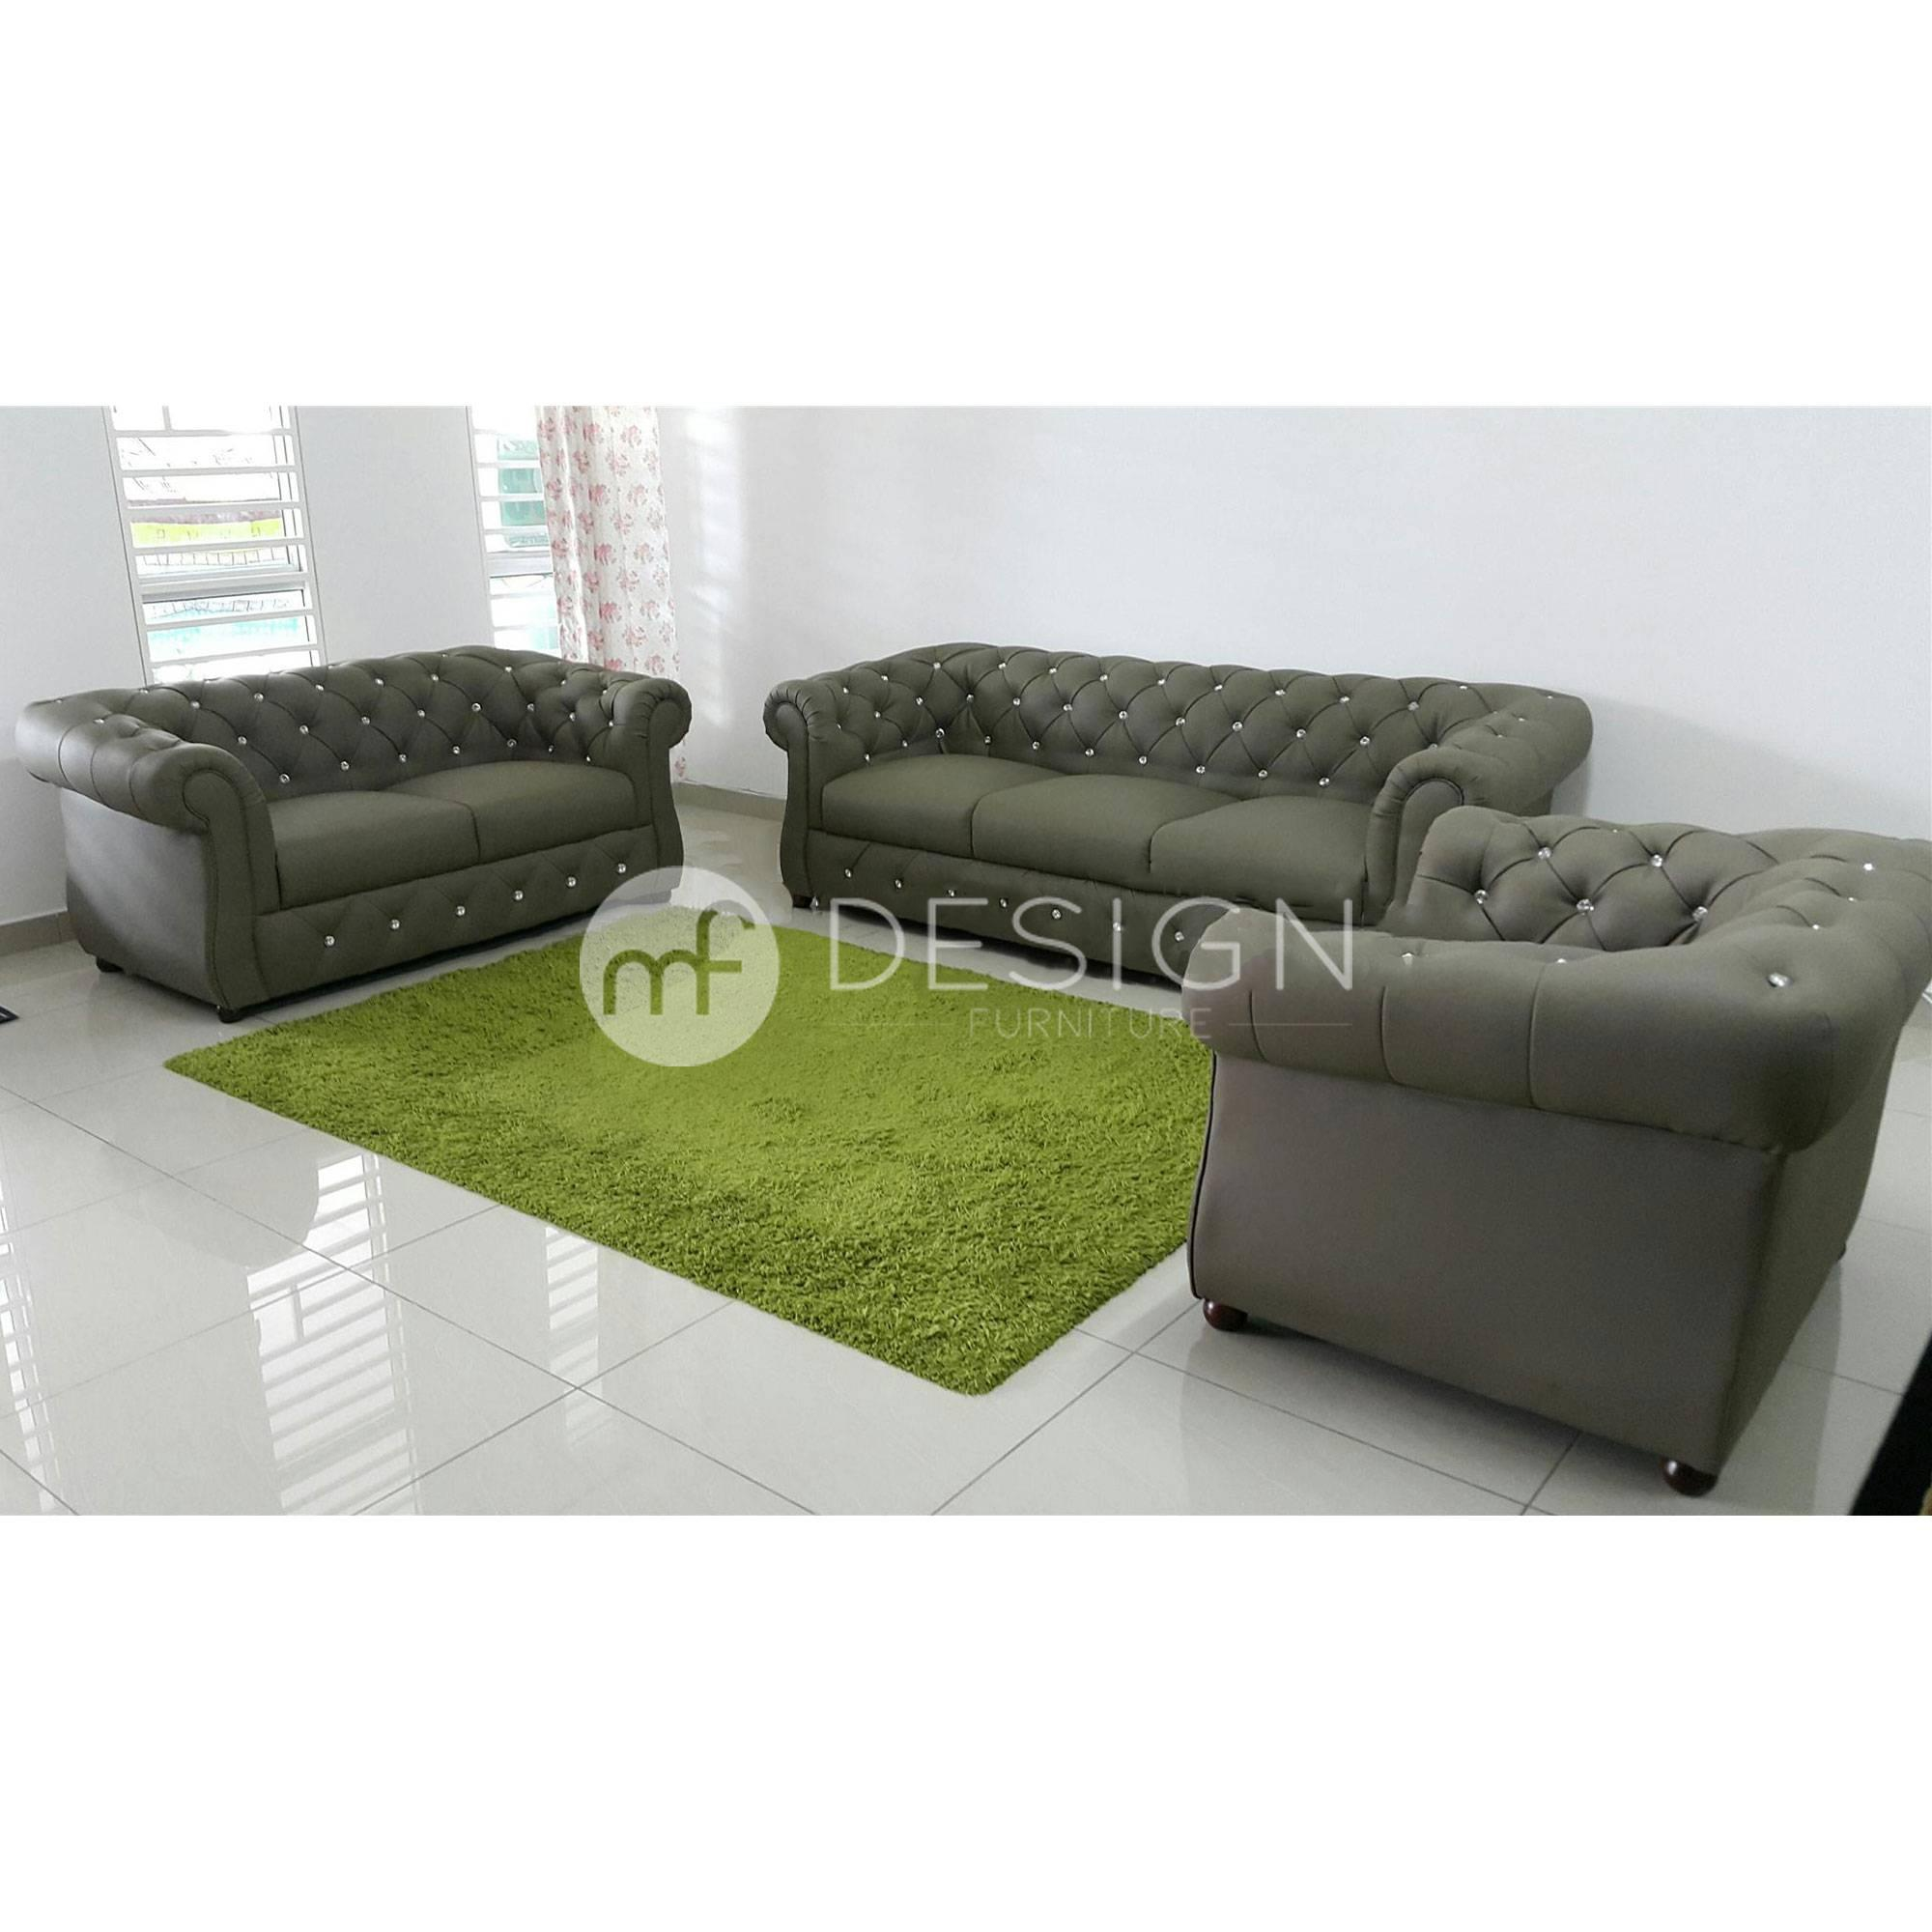 sofa chesterfield murah malaysia. Black Bedroom Furniture Sets. Home Design Ideas